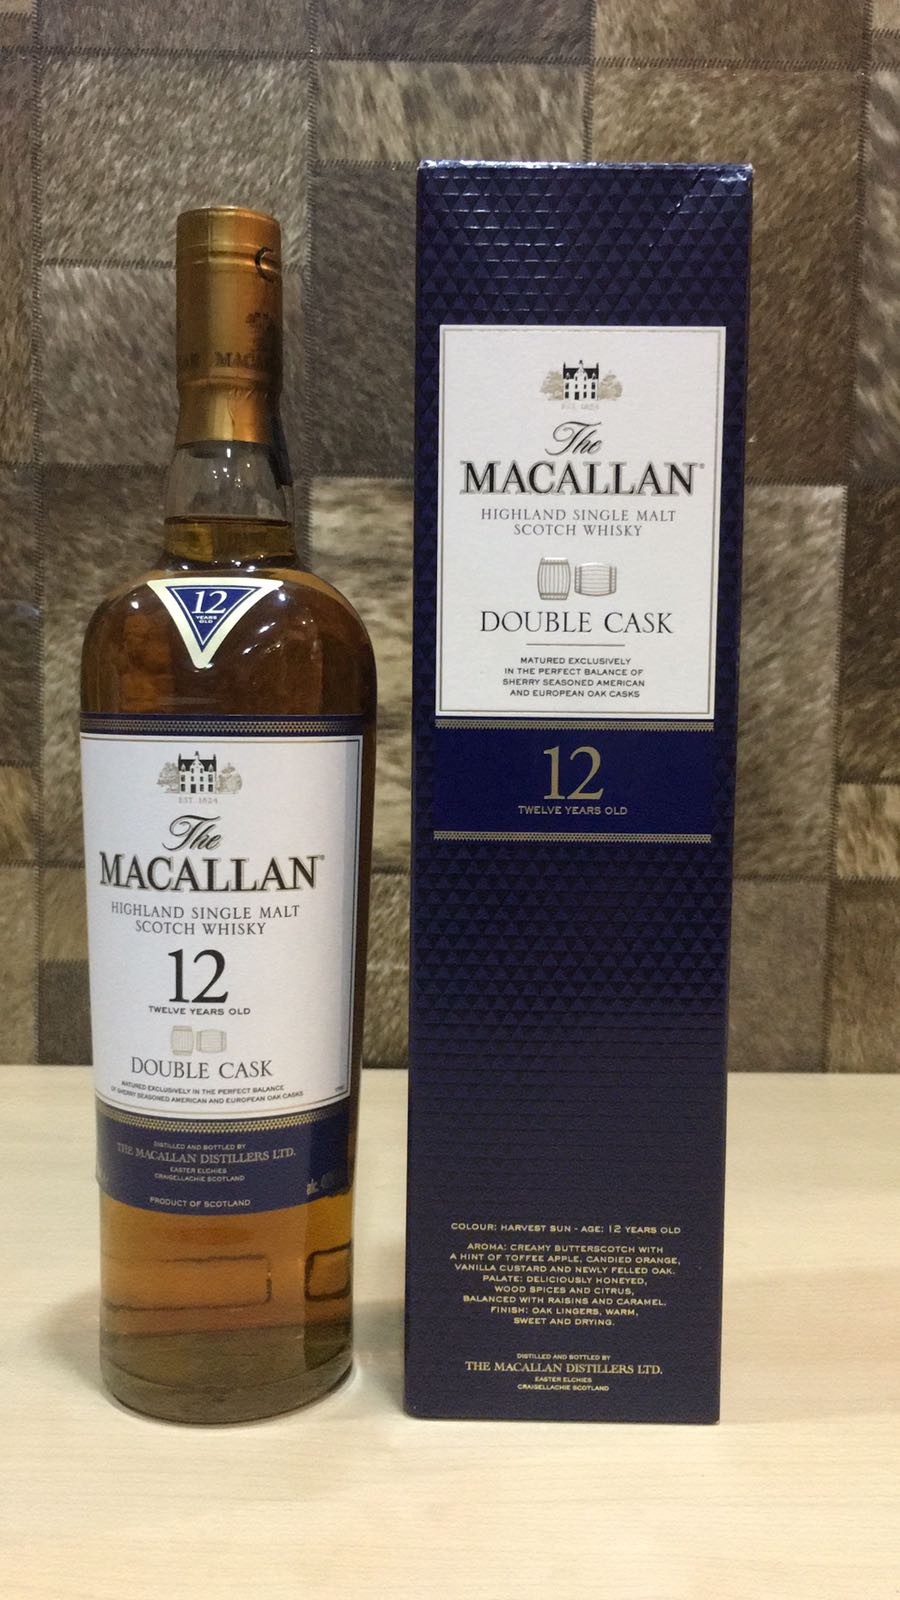 700ml Macallan 12yrs OLD Single Malt (Doubled Cask) Whisky